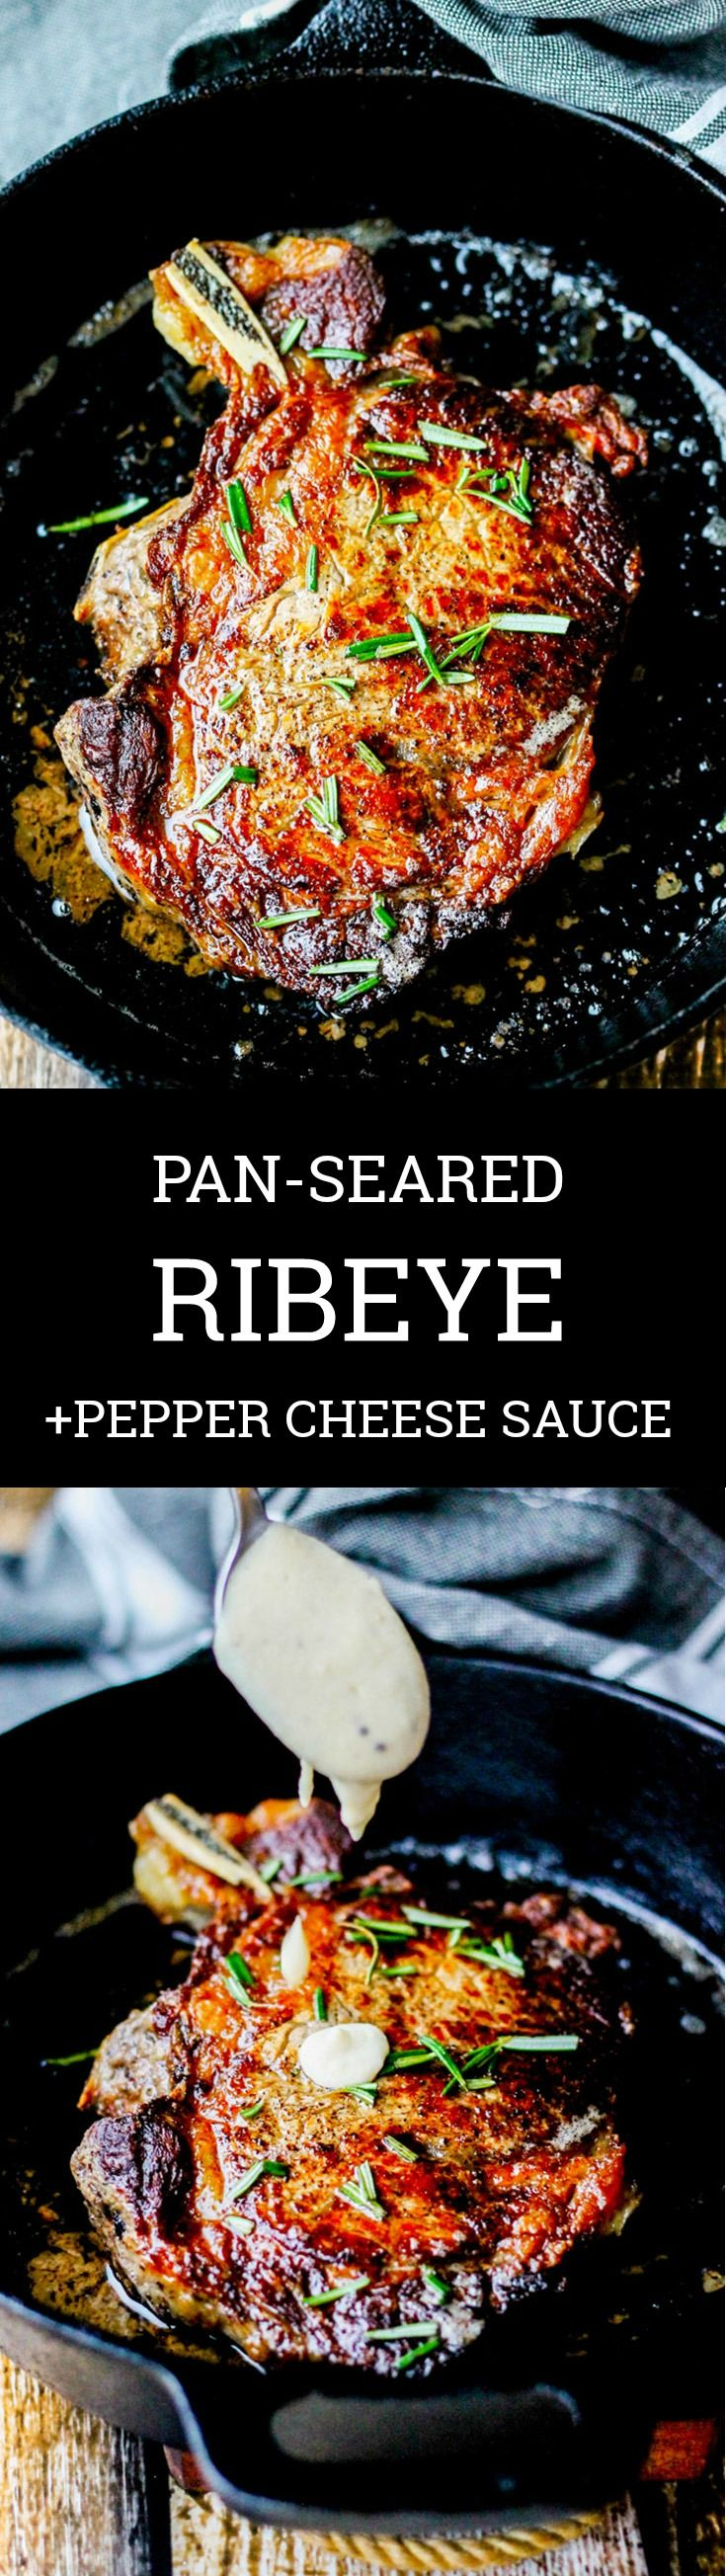 Pan-Seared Ribeye with Cracked Pepper & Mahon-Menorca Cheese Sauce is a super easy and quick idea for  Christmas dinner or any Holiday dinner. It just takes 15 minutes, from start to finish. You can't beat that! #Ad #MahonCheese #Steak  #Christmasdinner